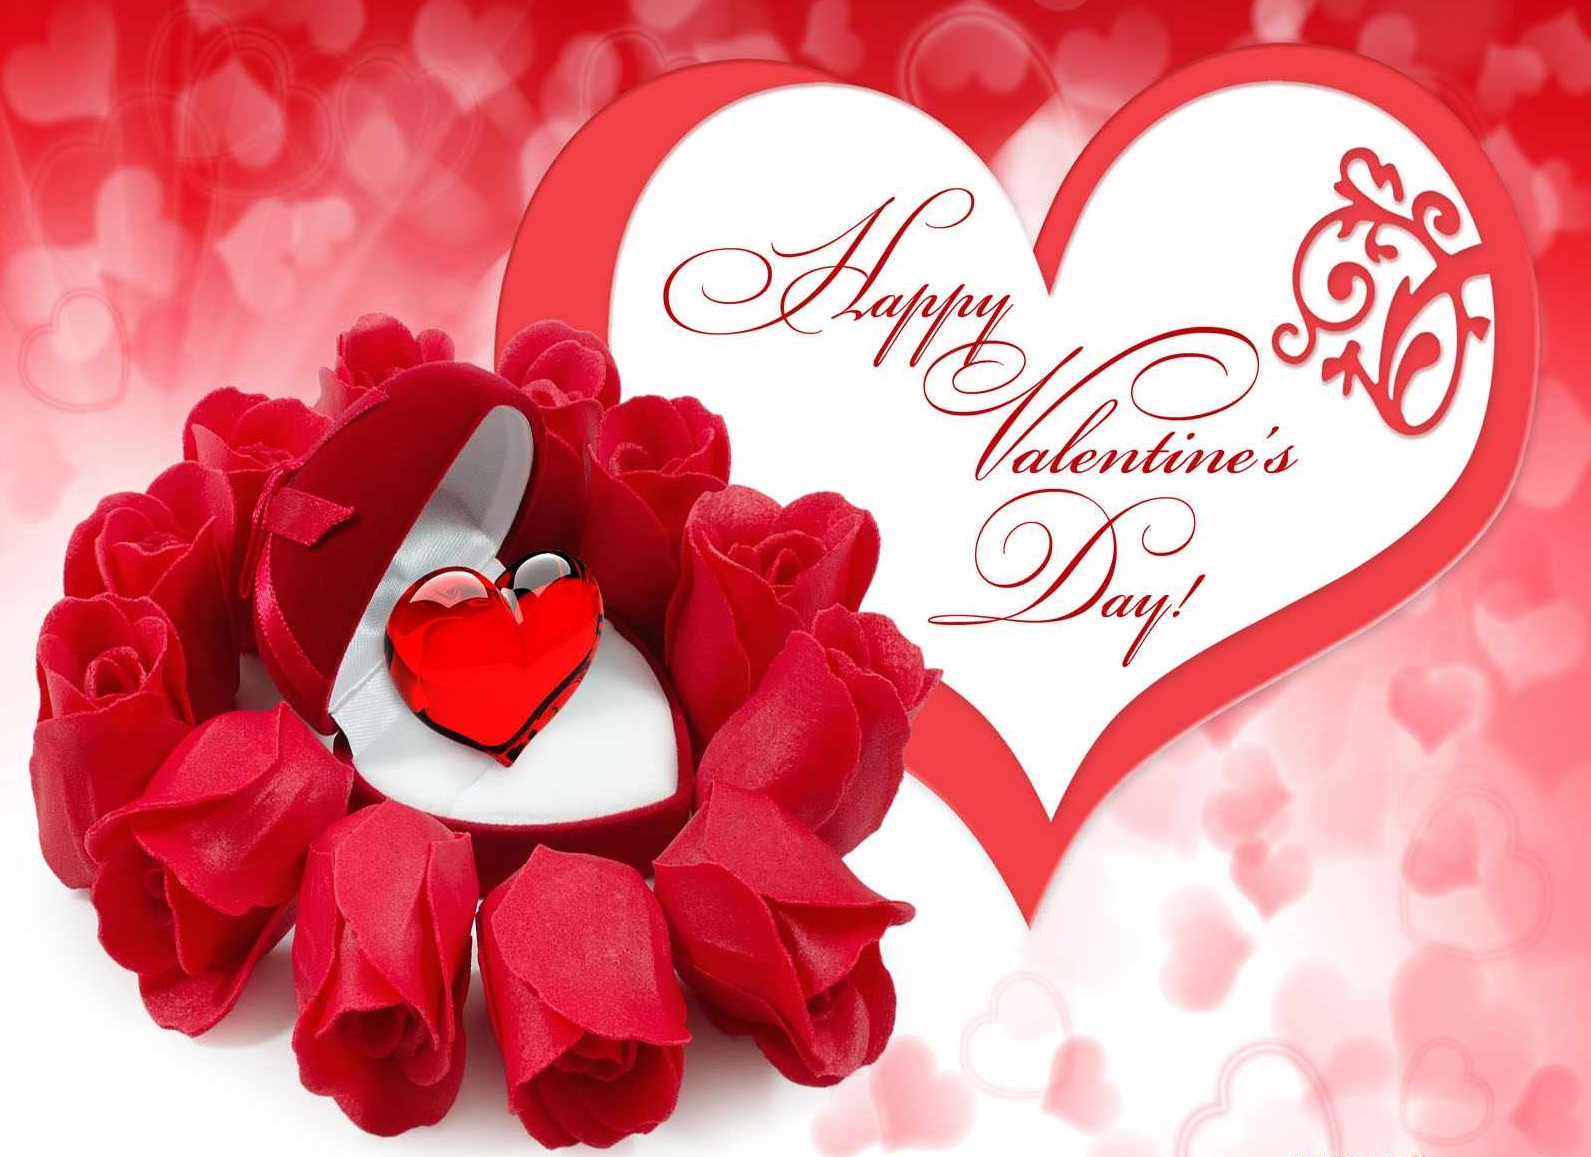 Happy Valentines Day Wishes Quotes Messages Whats App Status